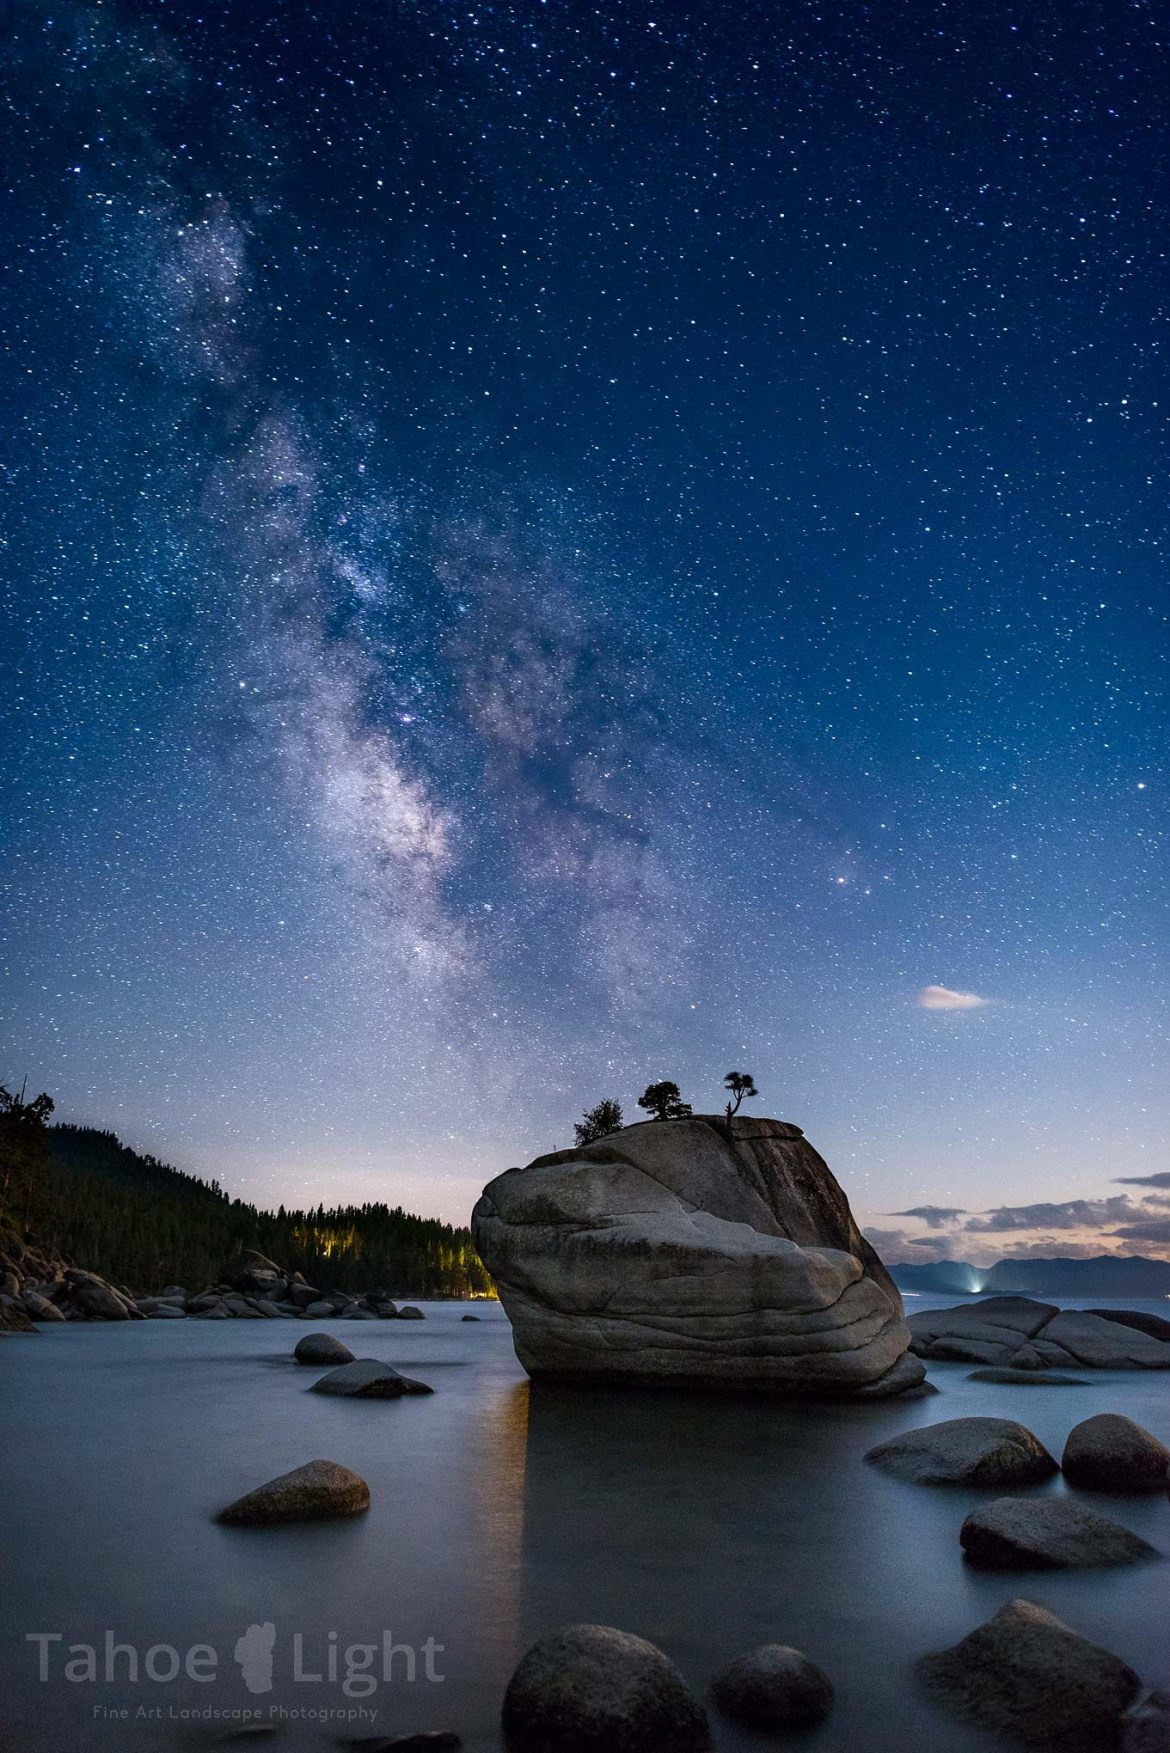 A night sky with stars and the Milky Way in the distance and a rock island in the foreground.